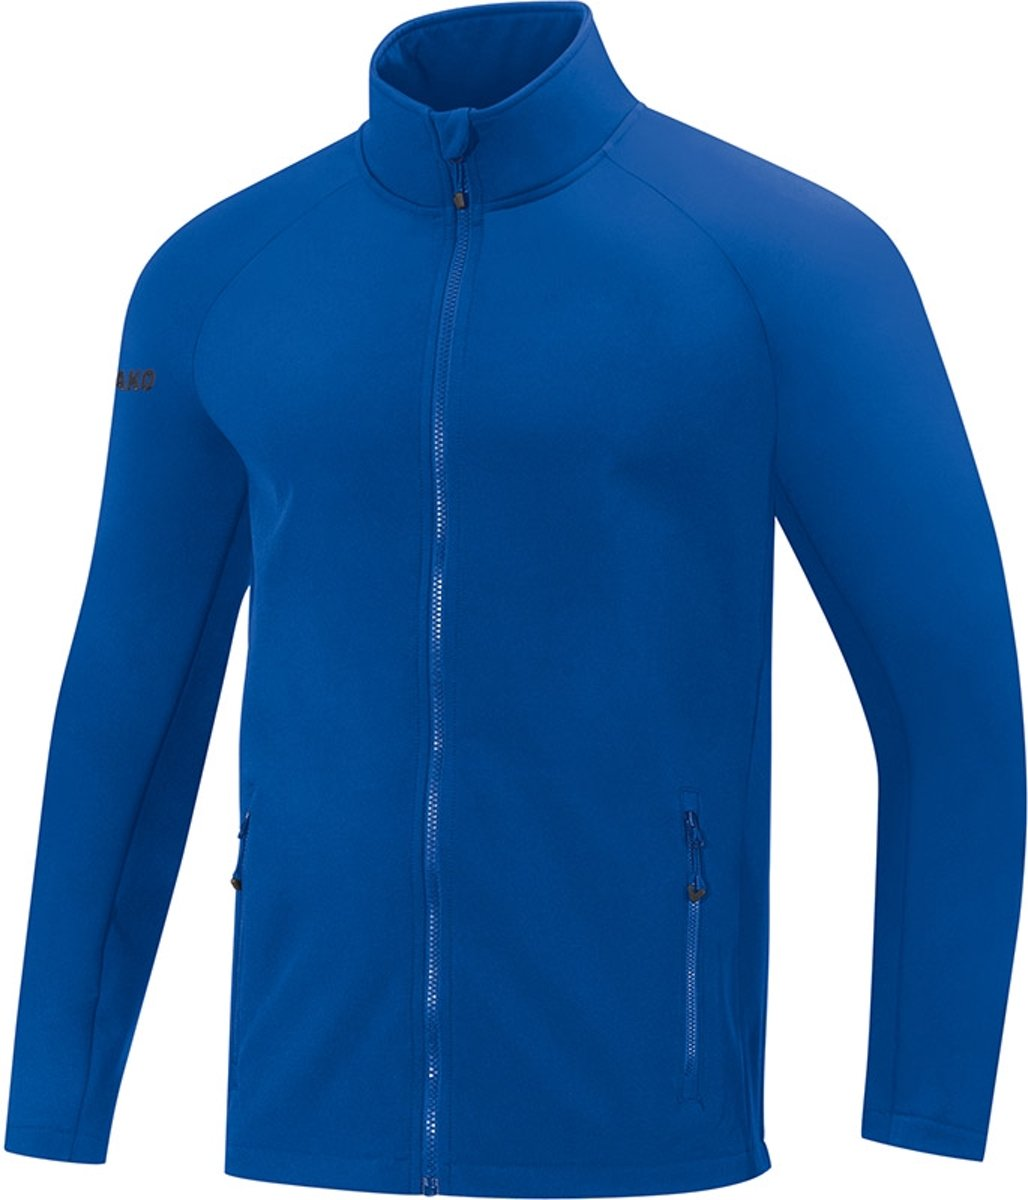 Jako Team Dames Softshell Jas - Softshelljassen  - blauw - 44